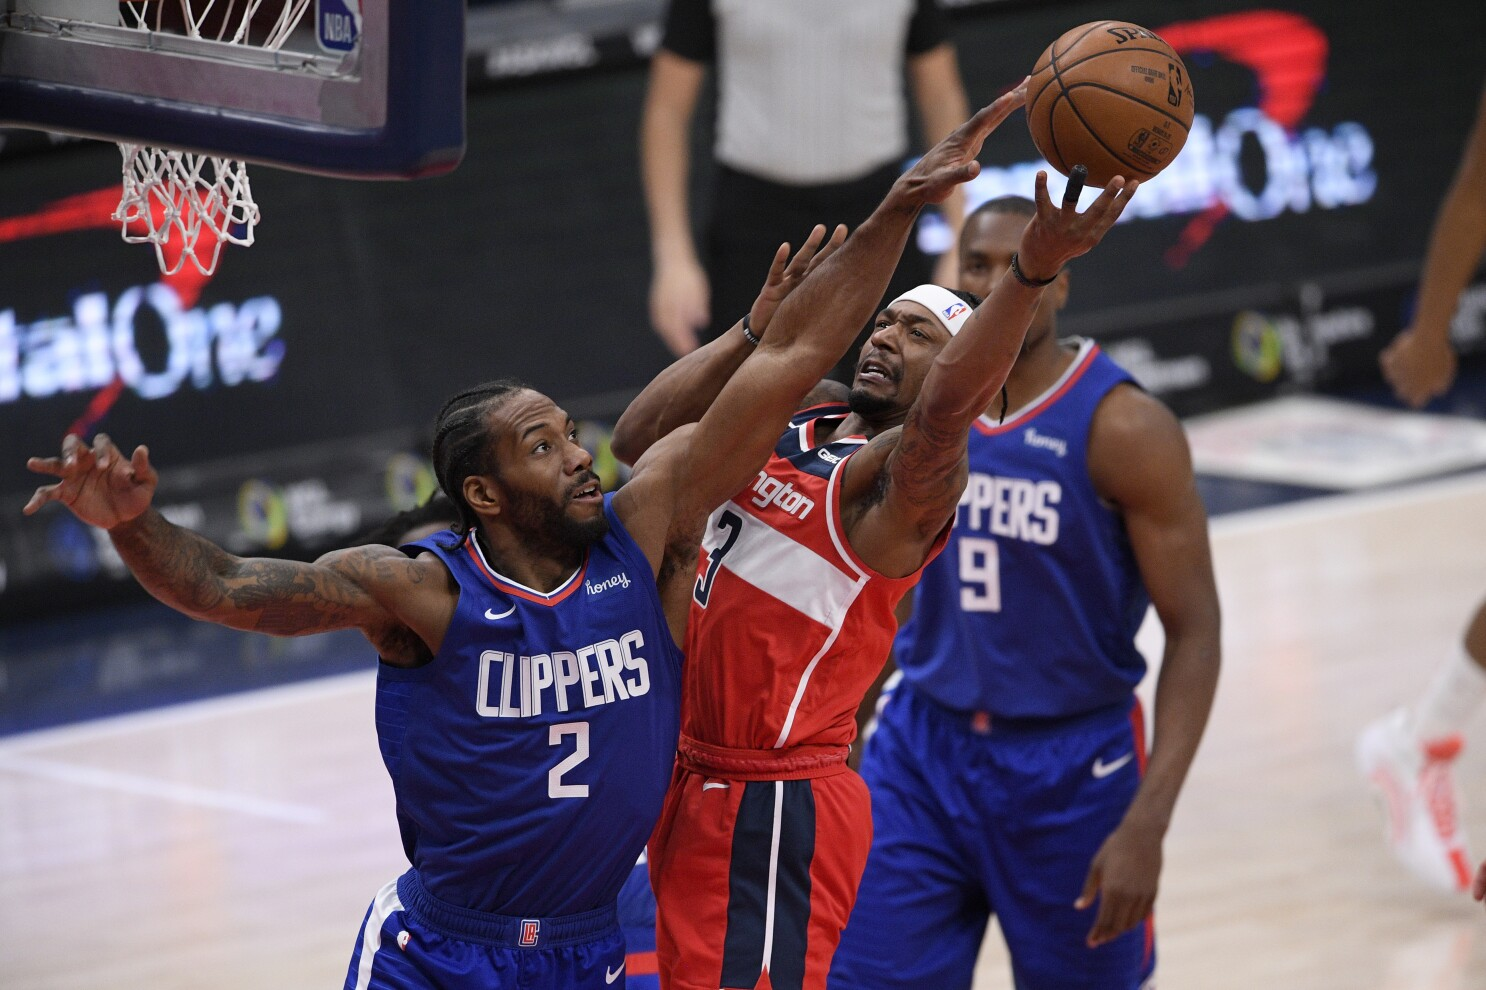 Paul George-less Clippers let game slip away to Wizards - Los Angeles Times